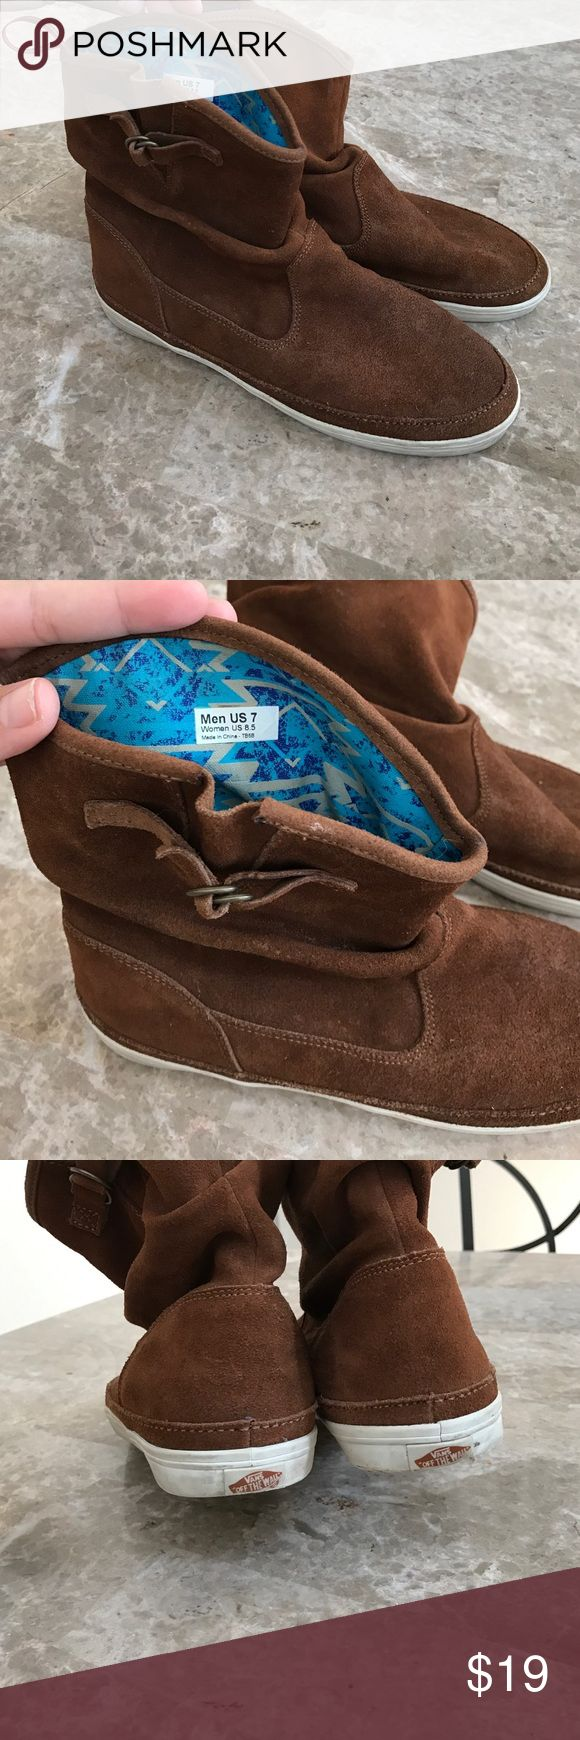 Vans boot style Bought these from another posher never wore them I feel they run small it's says men's 7 women's 8.5 but I feel it's more like a ladies 7.5 to 8 men's 6 to. 6.5 . I paid total ship $20.95 but just asking for what I paid without ship Vans Shoes Ankle Boots & Booties